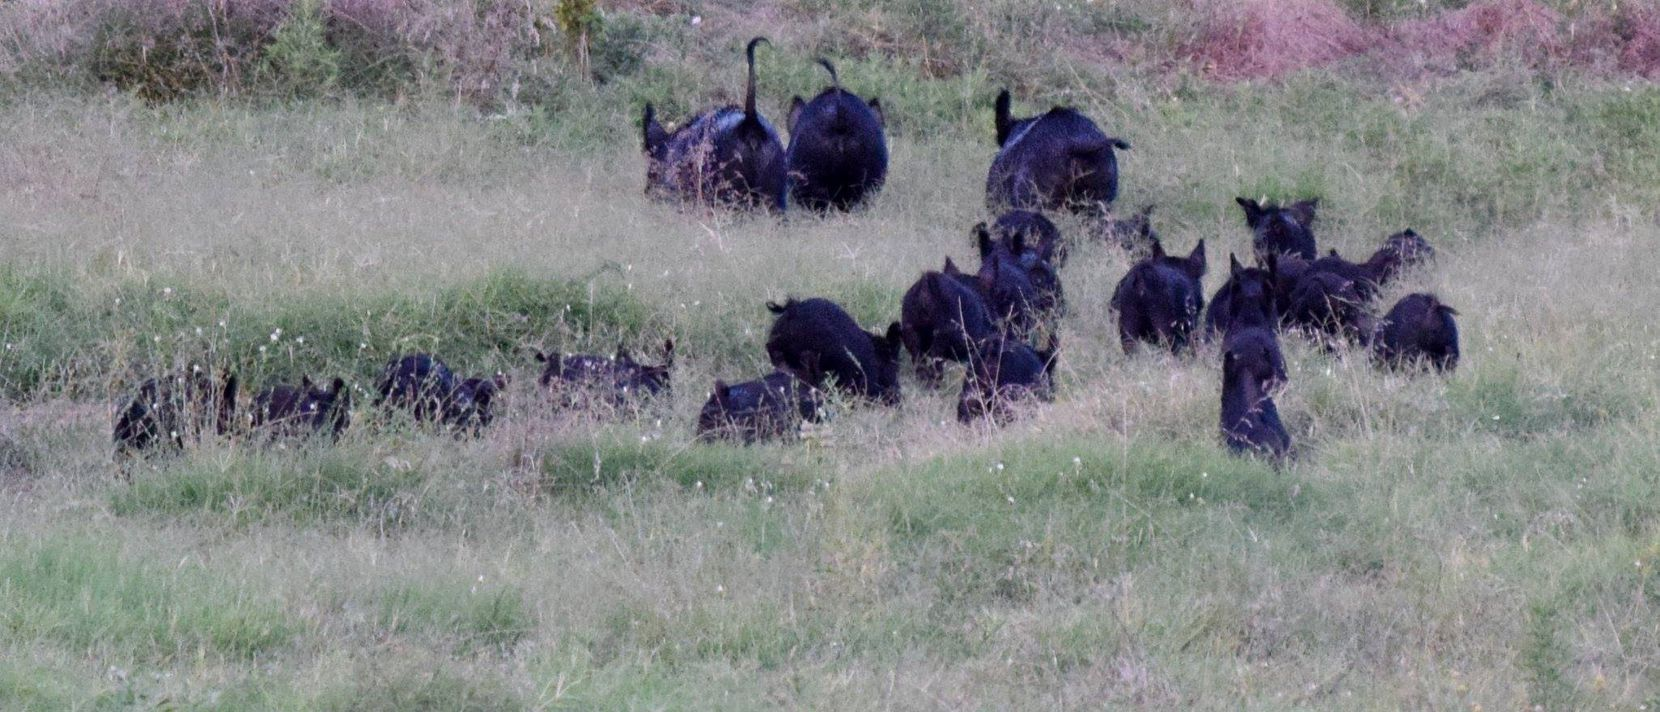 Feral hogs were recently spotted roaming near Big Spring.